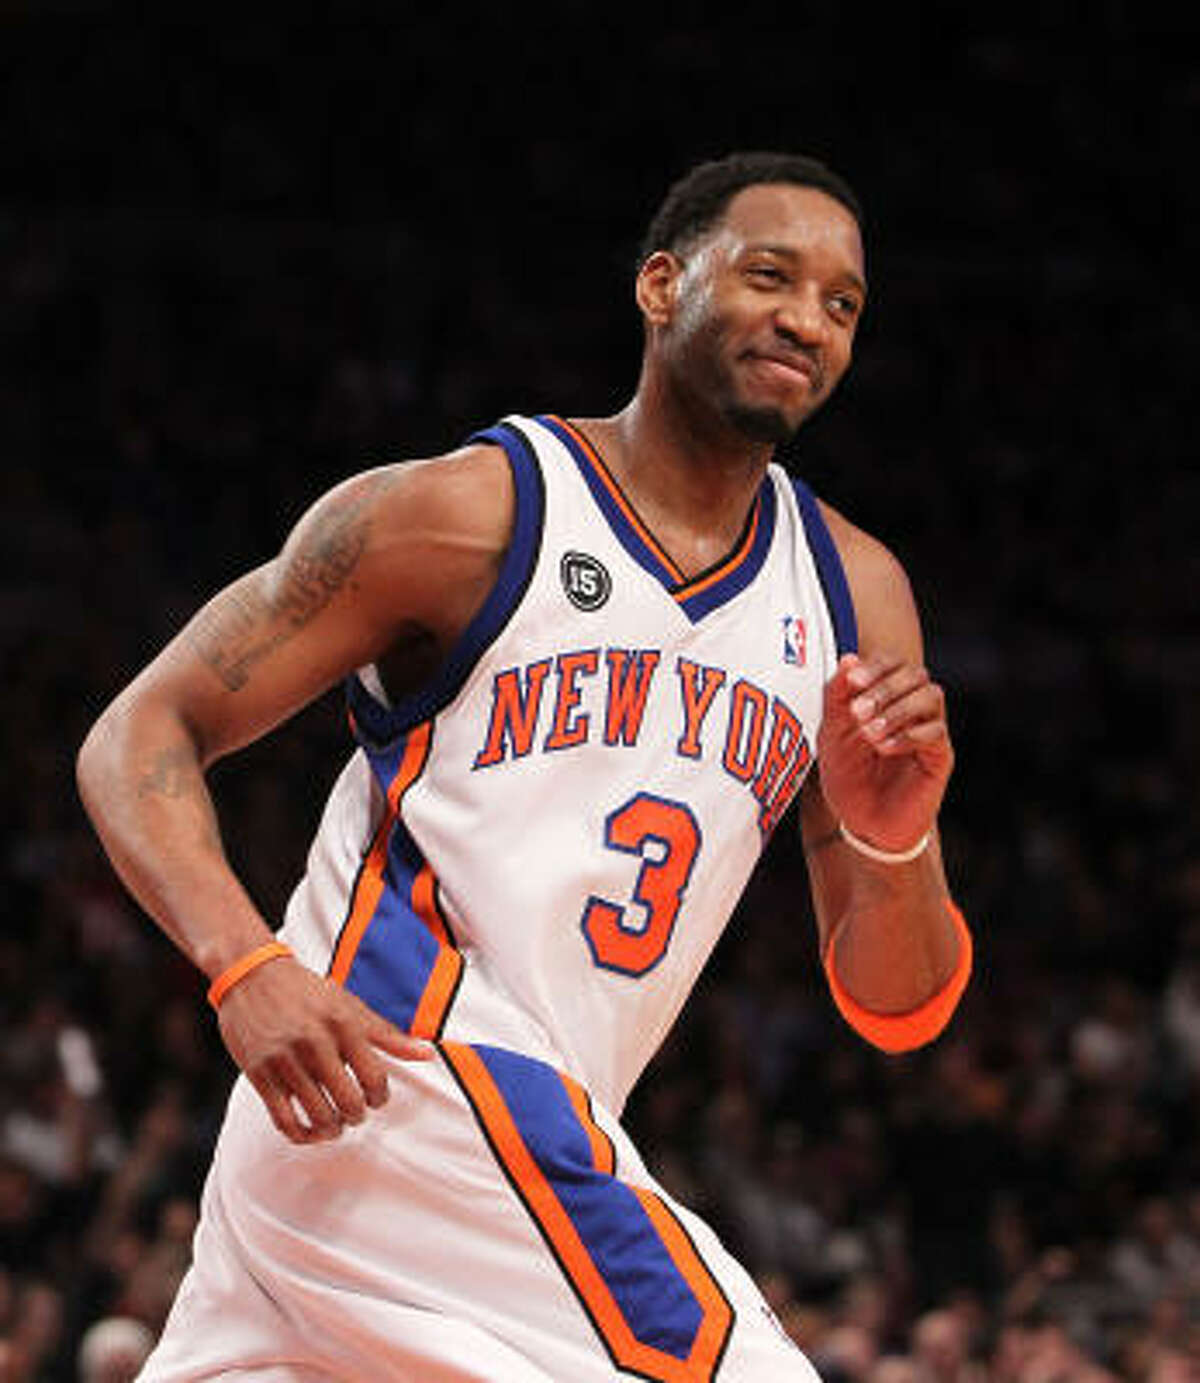 2010 In his Feb. 20 debut with the Knicks, Tracy McGrady scored 26 points against Oklahoma City.